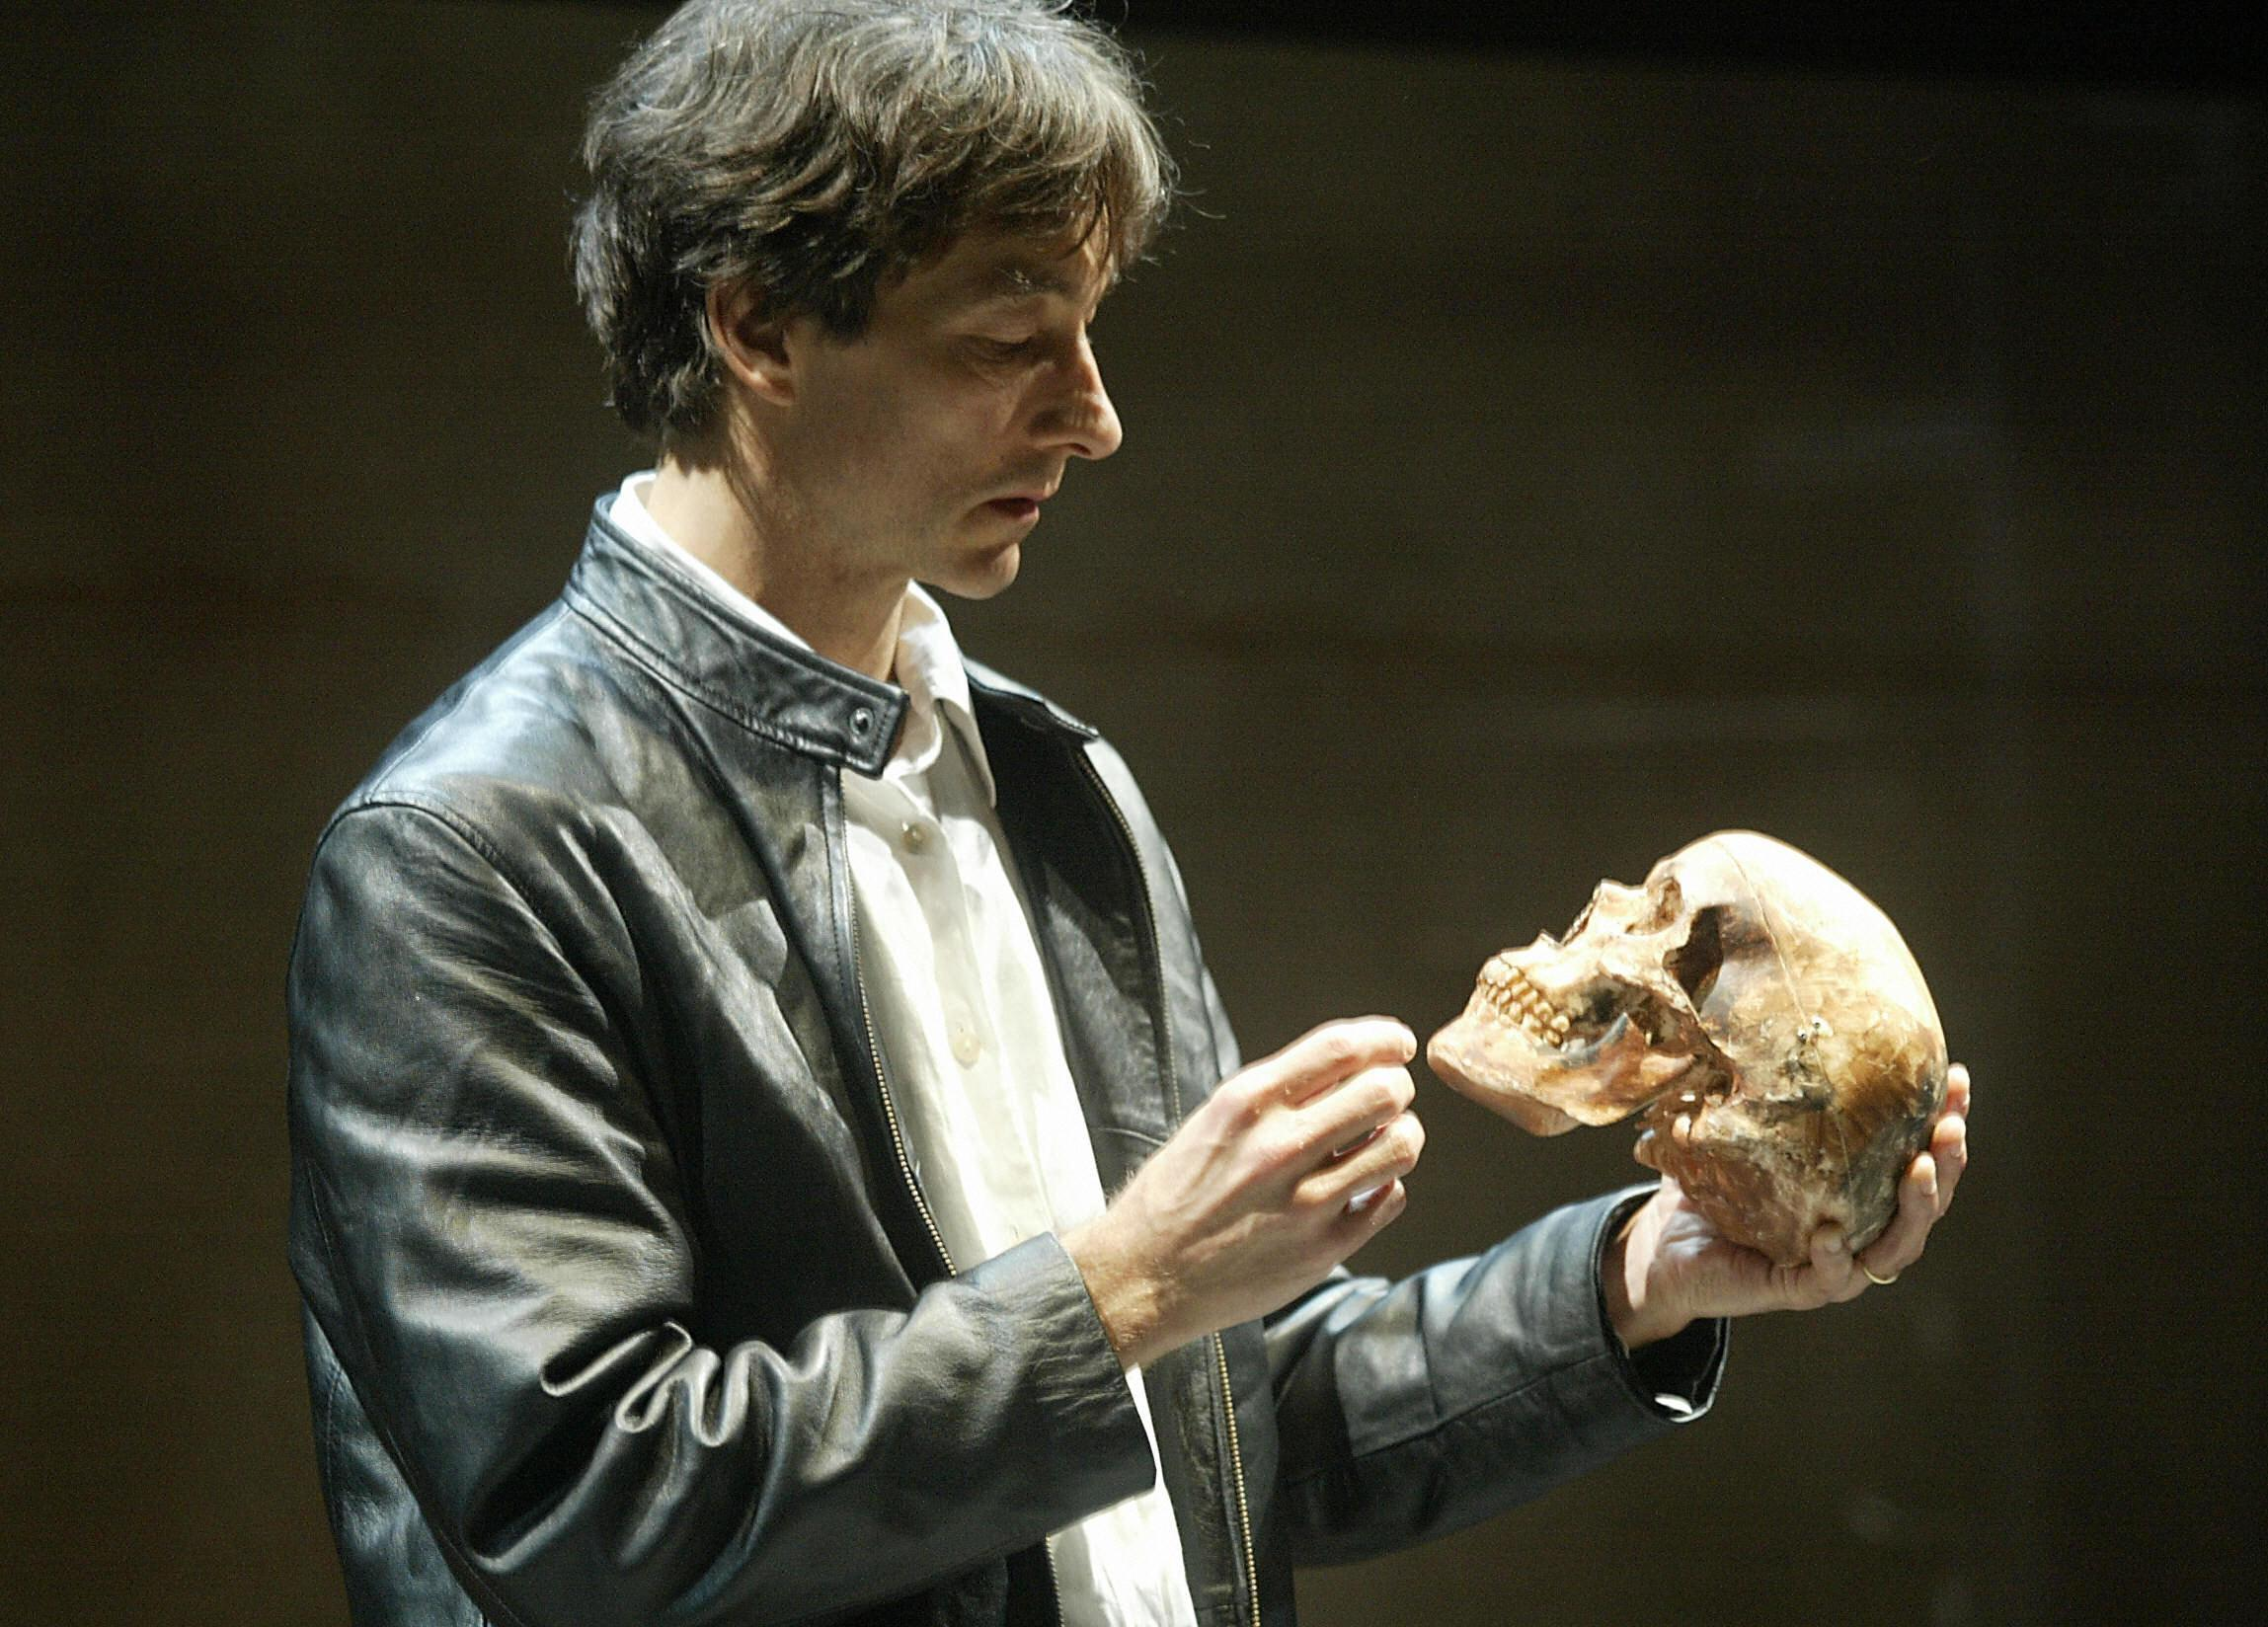 Jonathan Douglas holds a skull as he portrays a futuristic Hamlet at the Shouson theatre in Hong Kong.